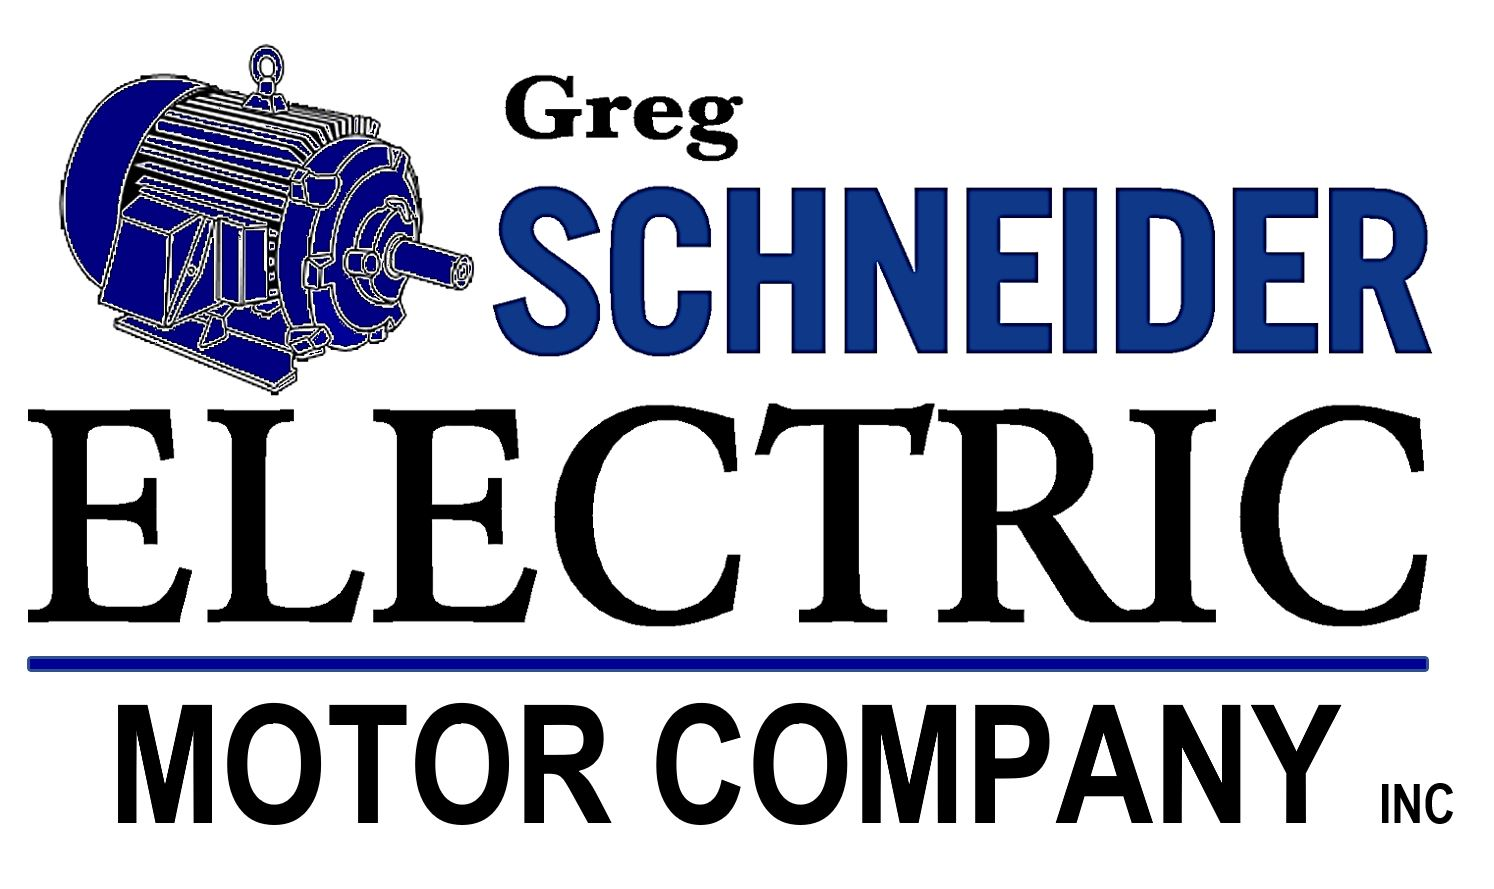 Greg Schneider Electric Motor Company Baldor Motors Near Me